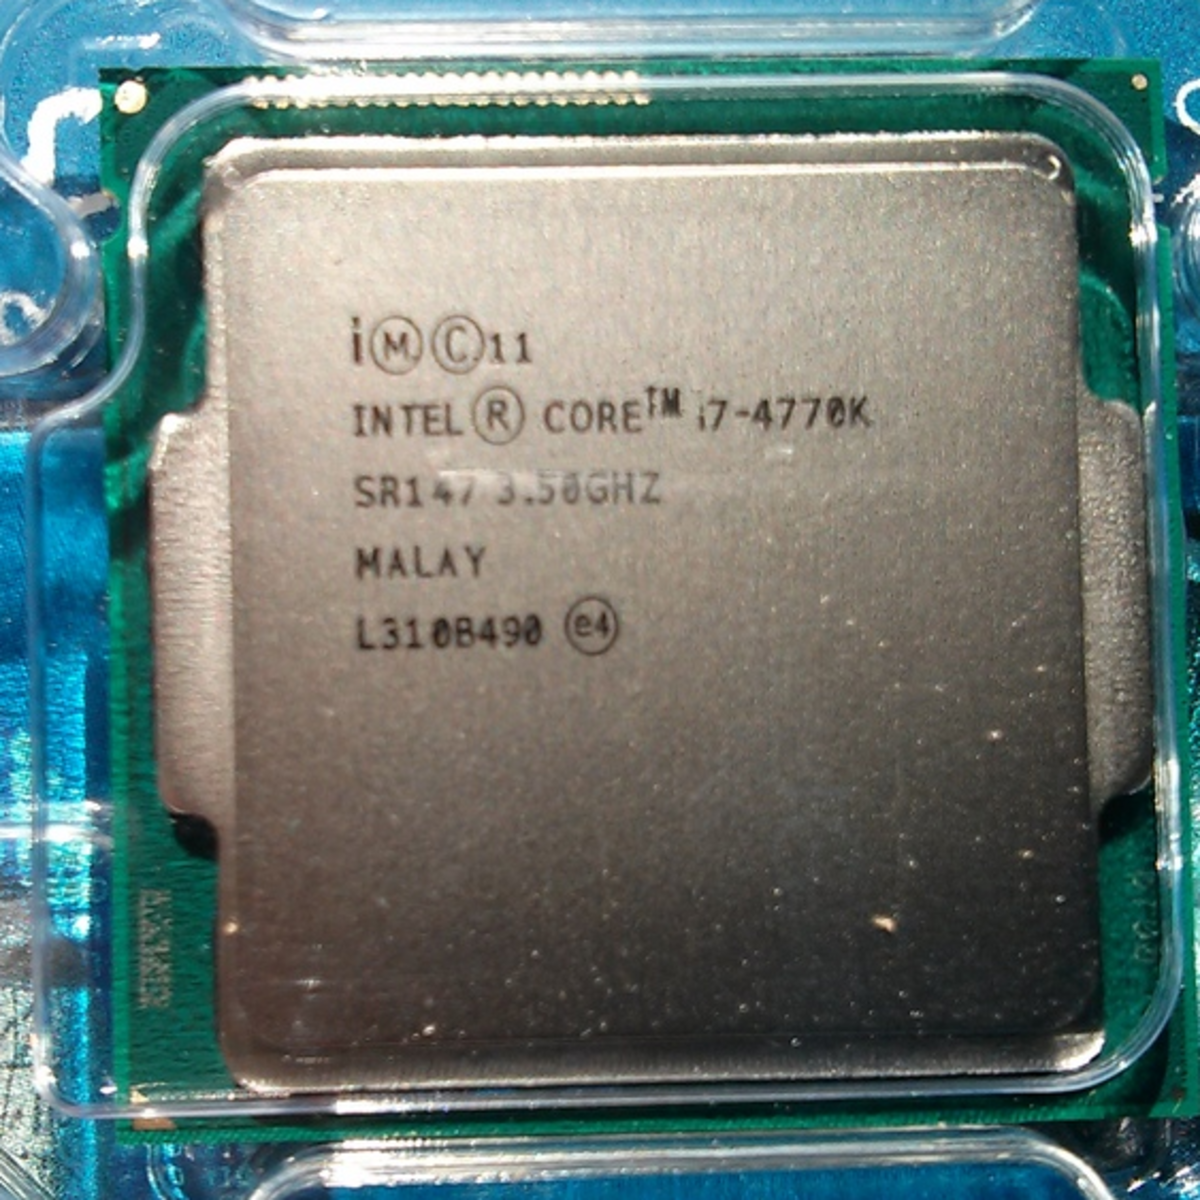 While we decided upon the Intel's i7-4790k, it may not be the right choice for everyone in this price range. Some may even opt for a LGA 2011 X99 solution in the i7-5820k